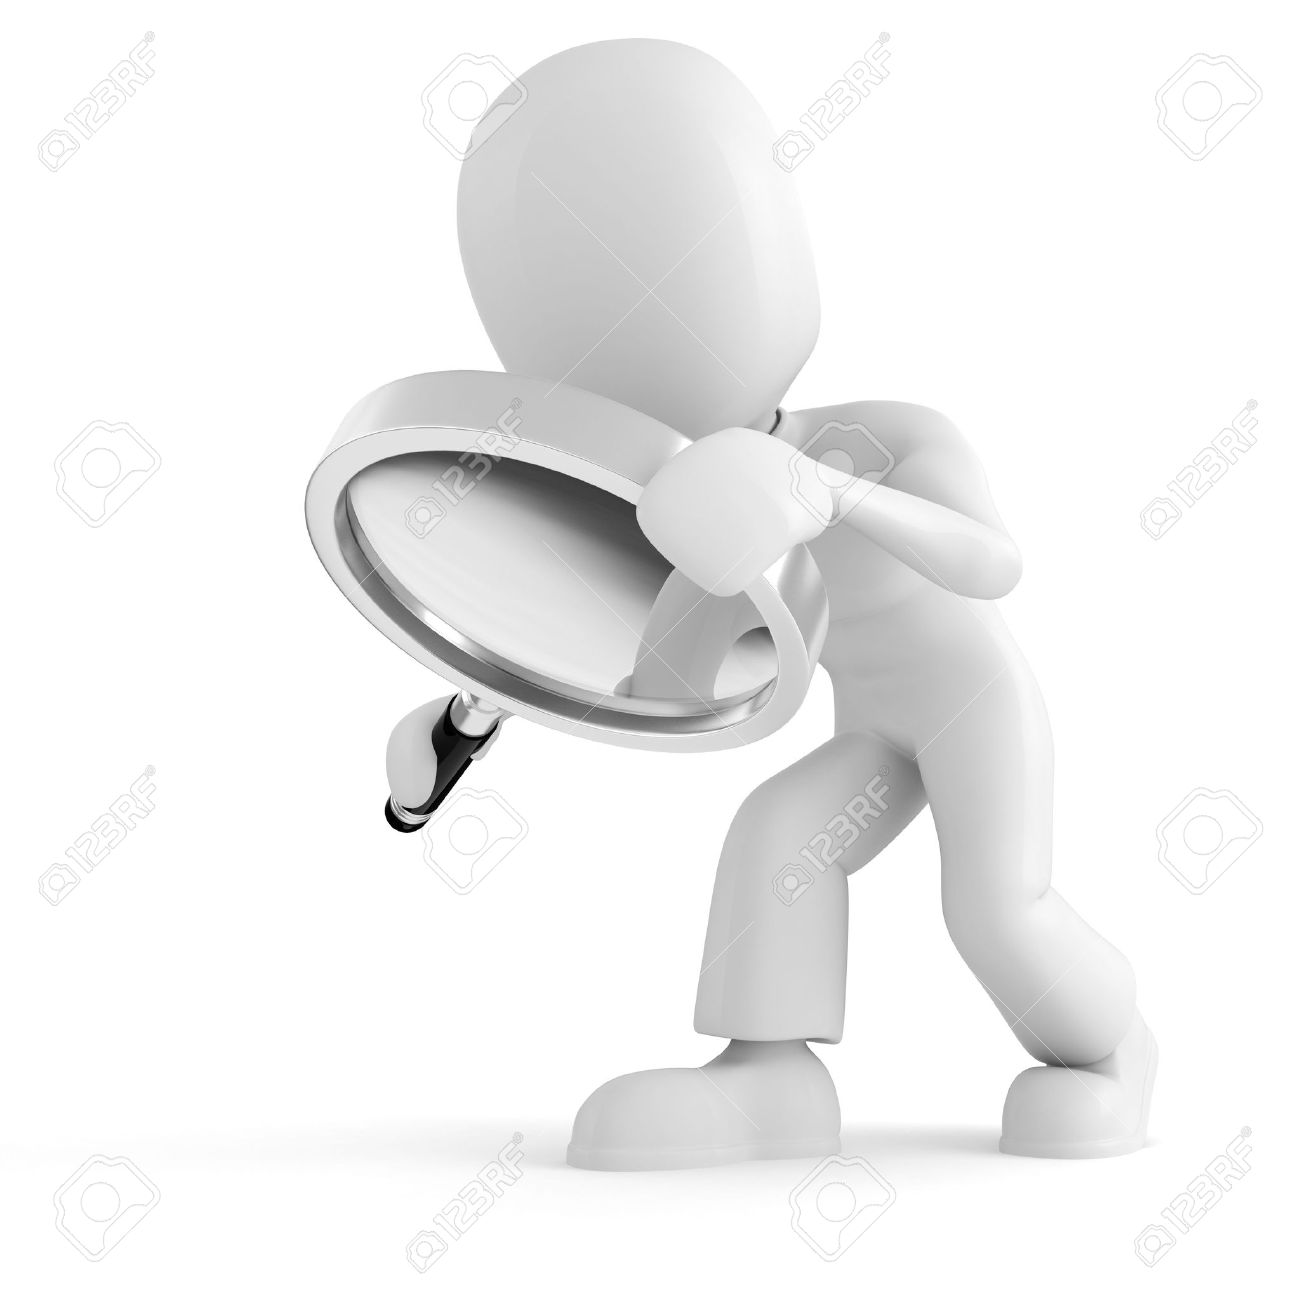 Magnifier Stock Photos Images. Royalty Free Magnifier Images And ...